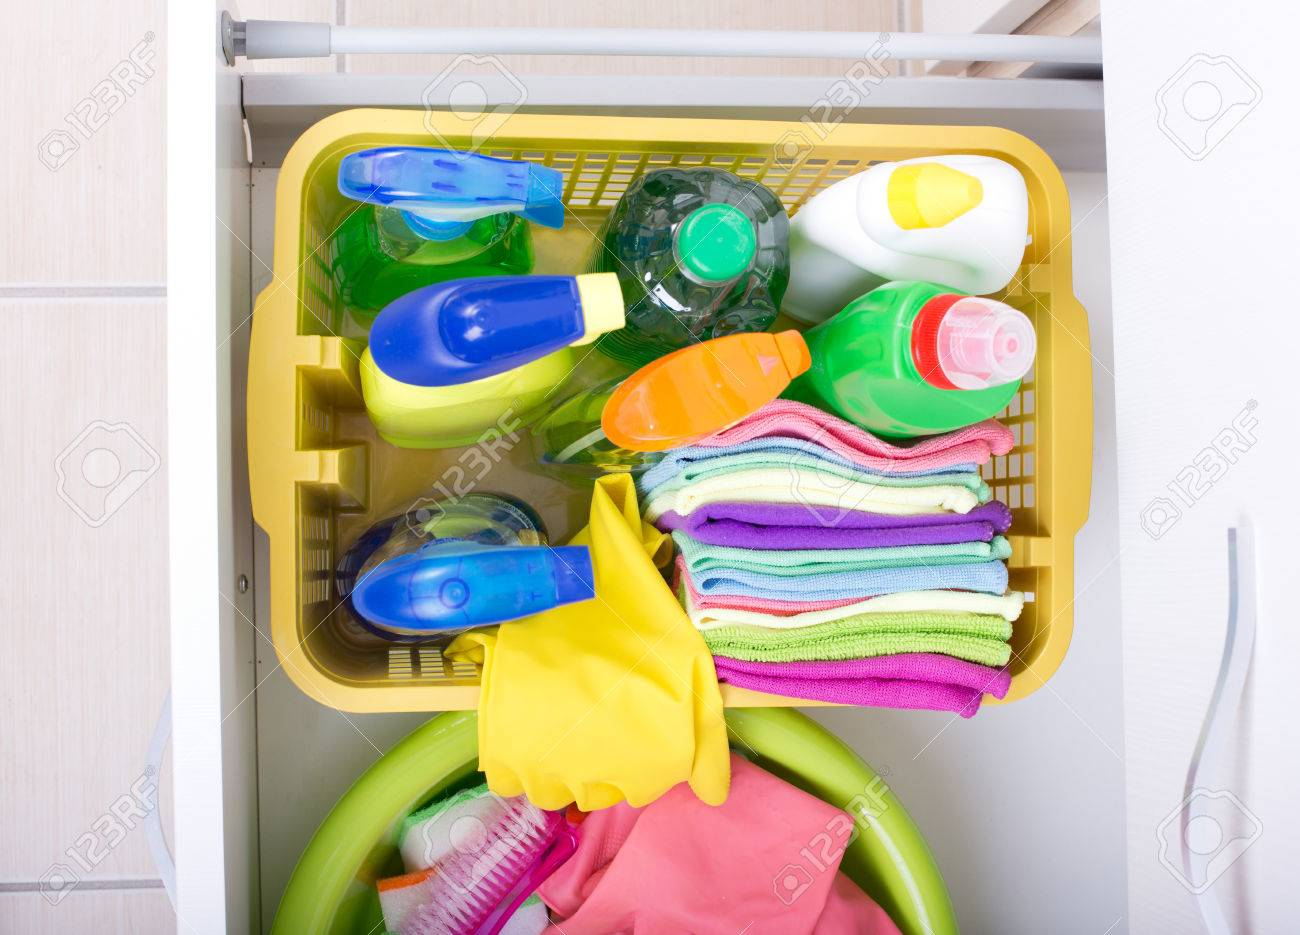 Top View Of Cleaning Supplies And Equipment Stored In Drawer